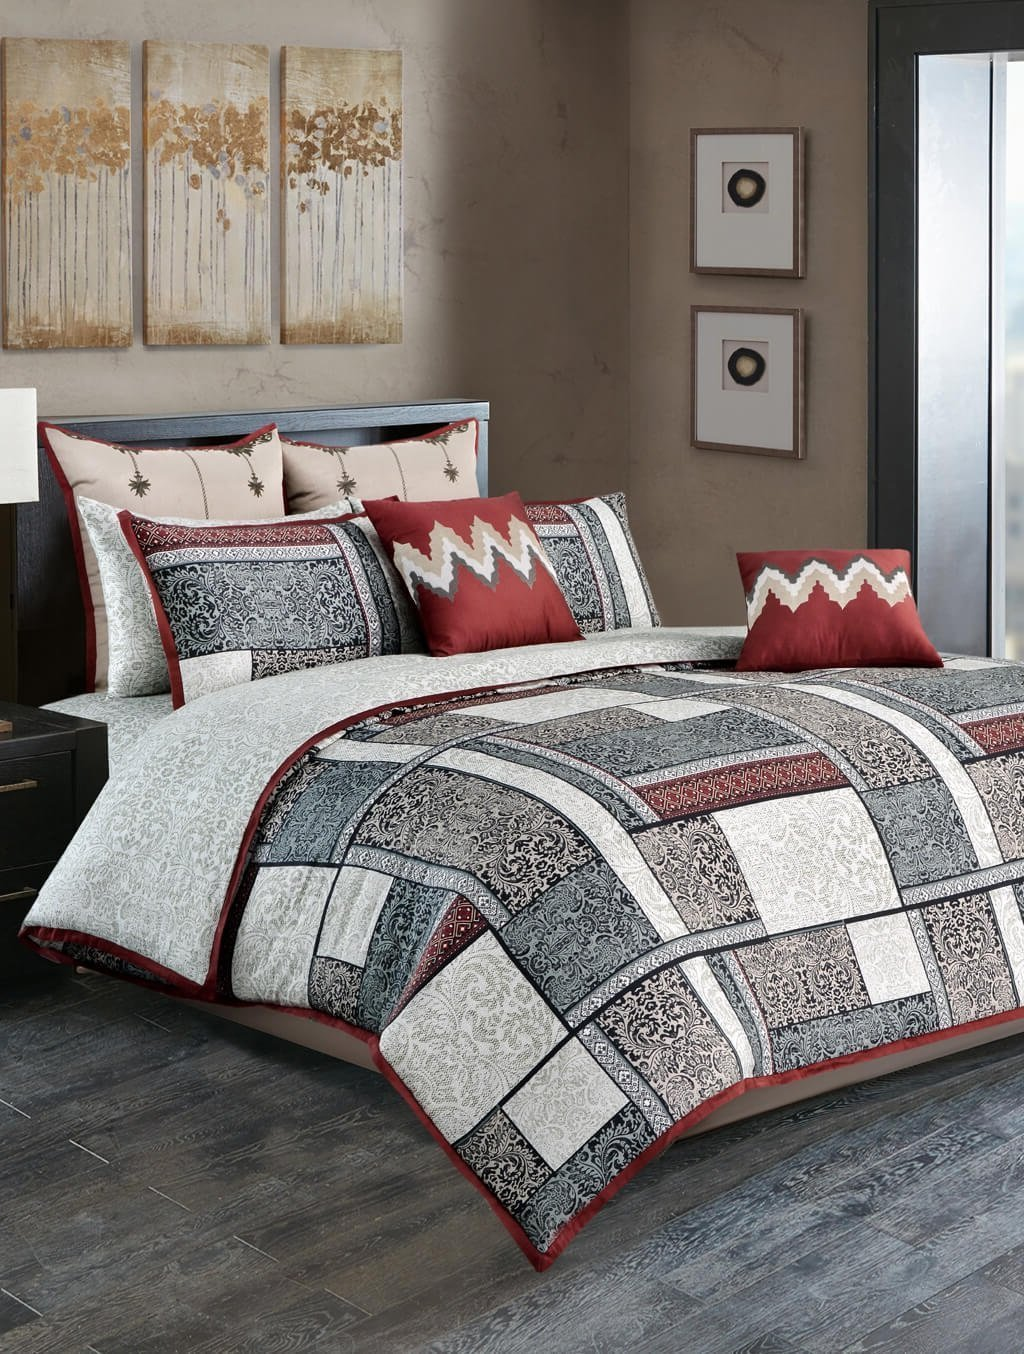 Ancient Patch Quilt Cover Luxury Bedding HOMBEDGOL